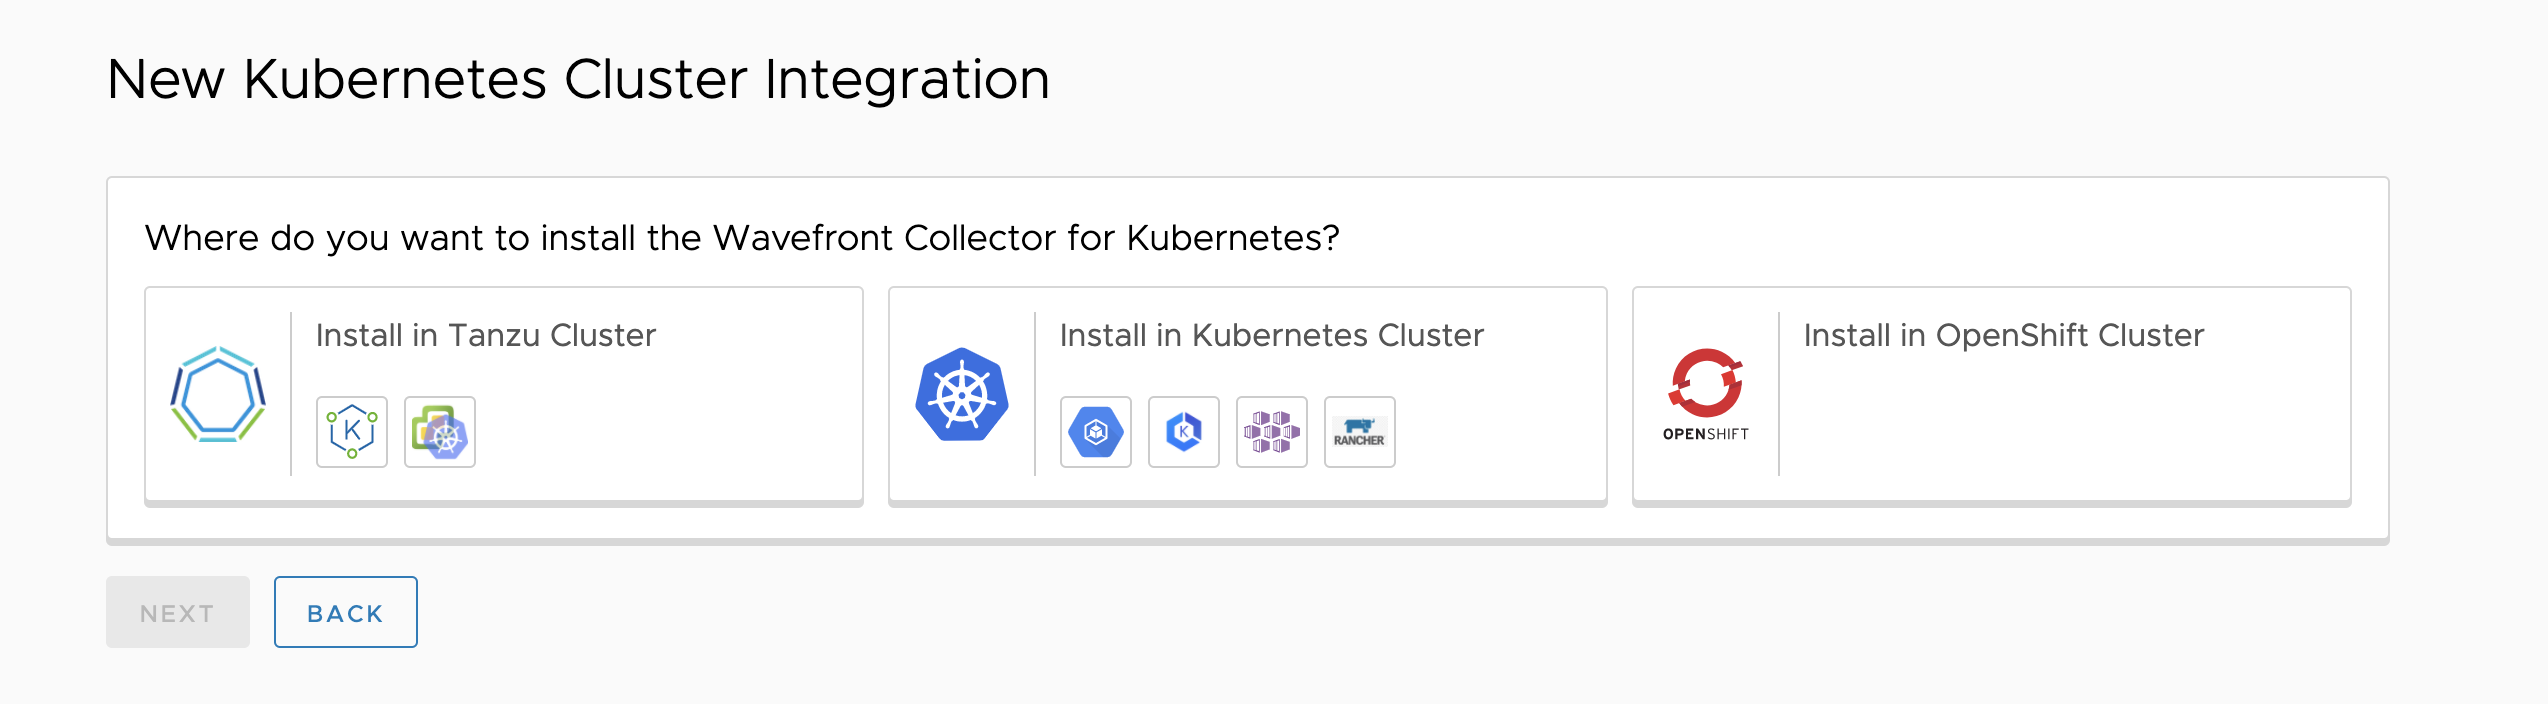 screenshot showing options to install in Tanzu, Kubernetes, or Openshift cluster